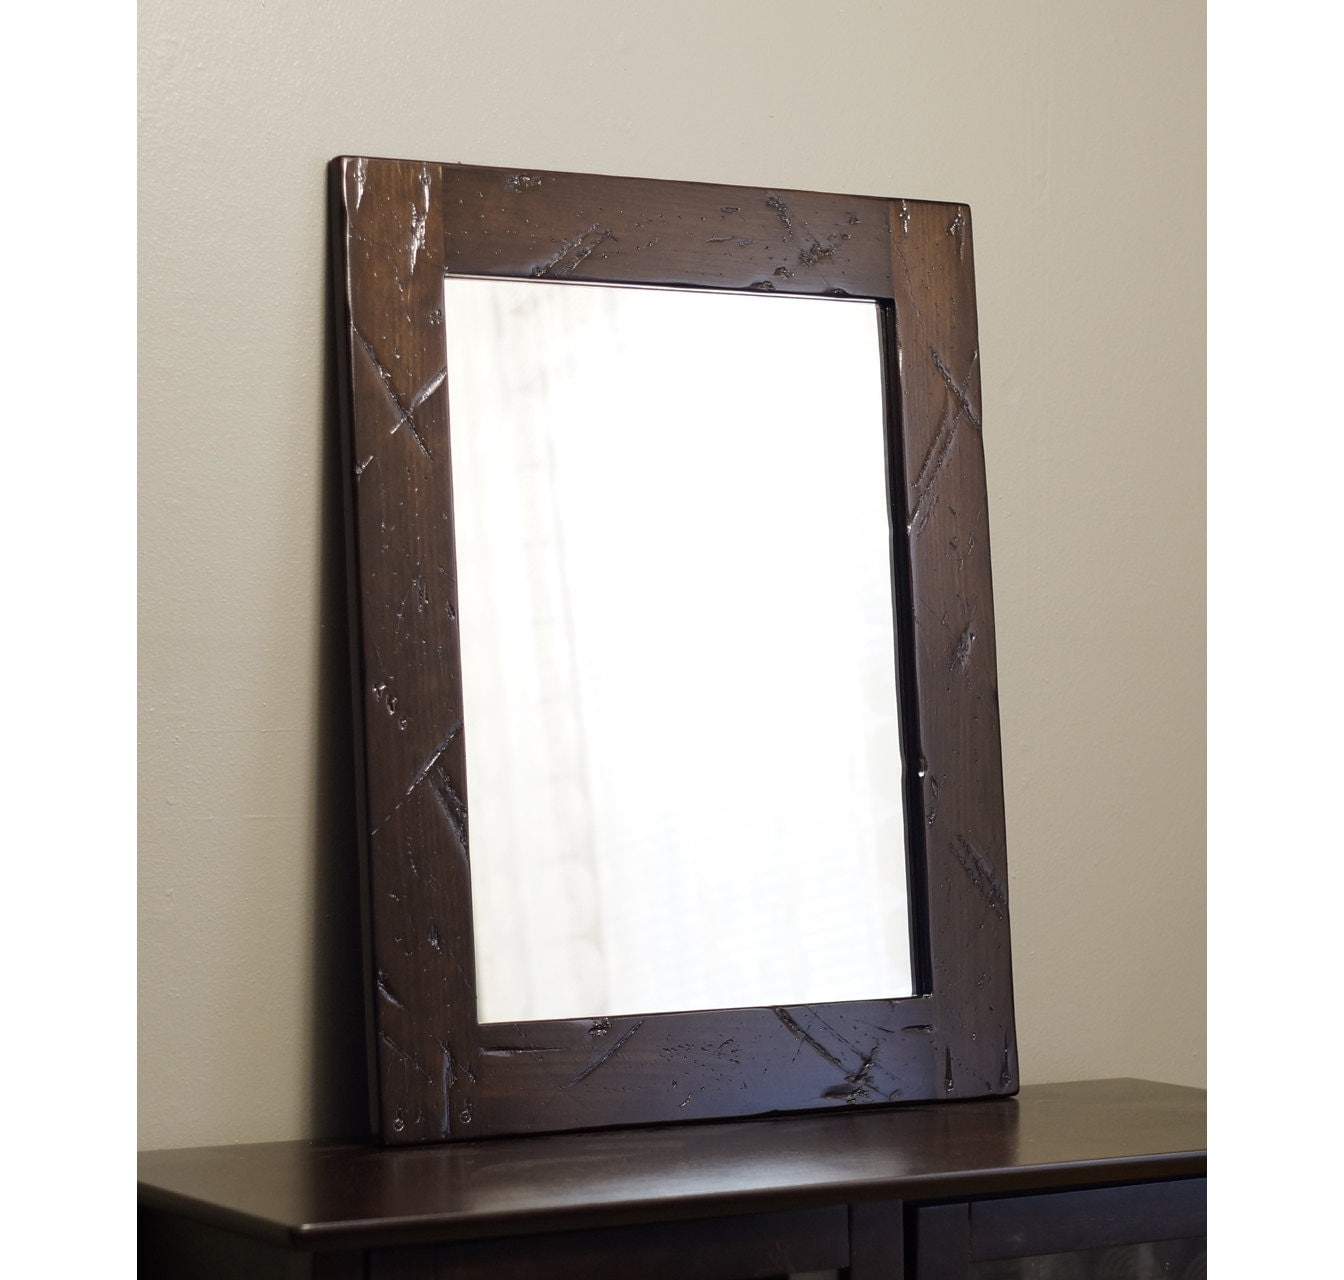 Distressed wood mirror bathroom dark brown rustic by for Rustic mirror